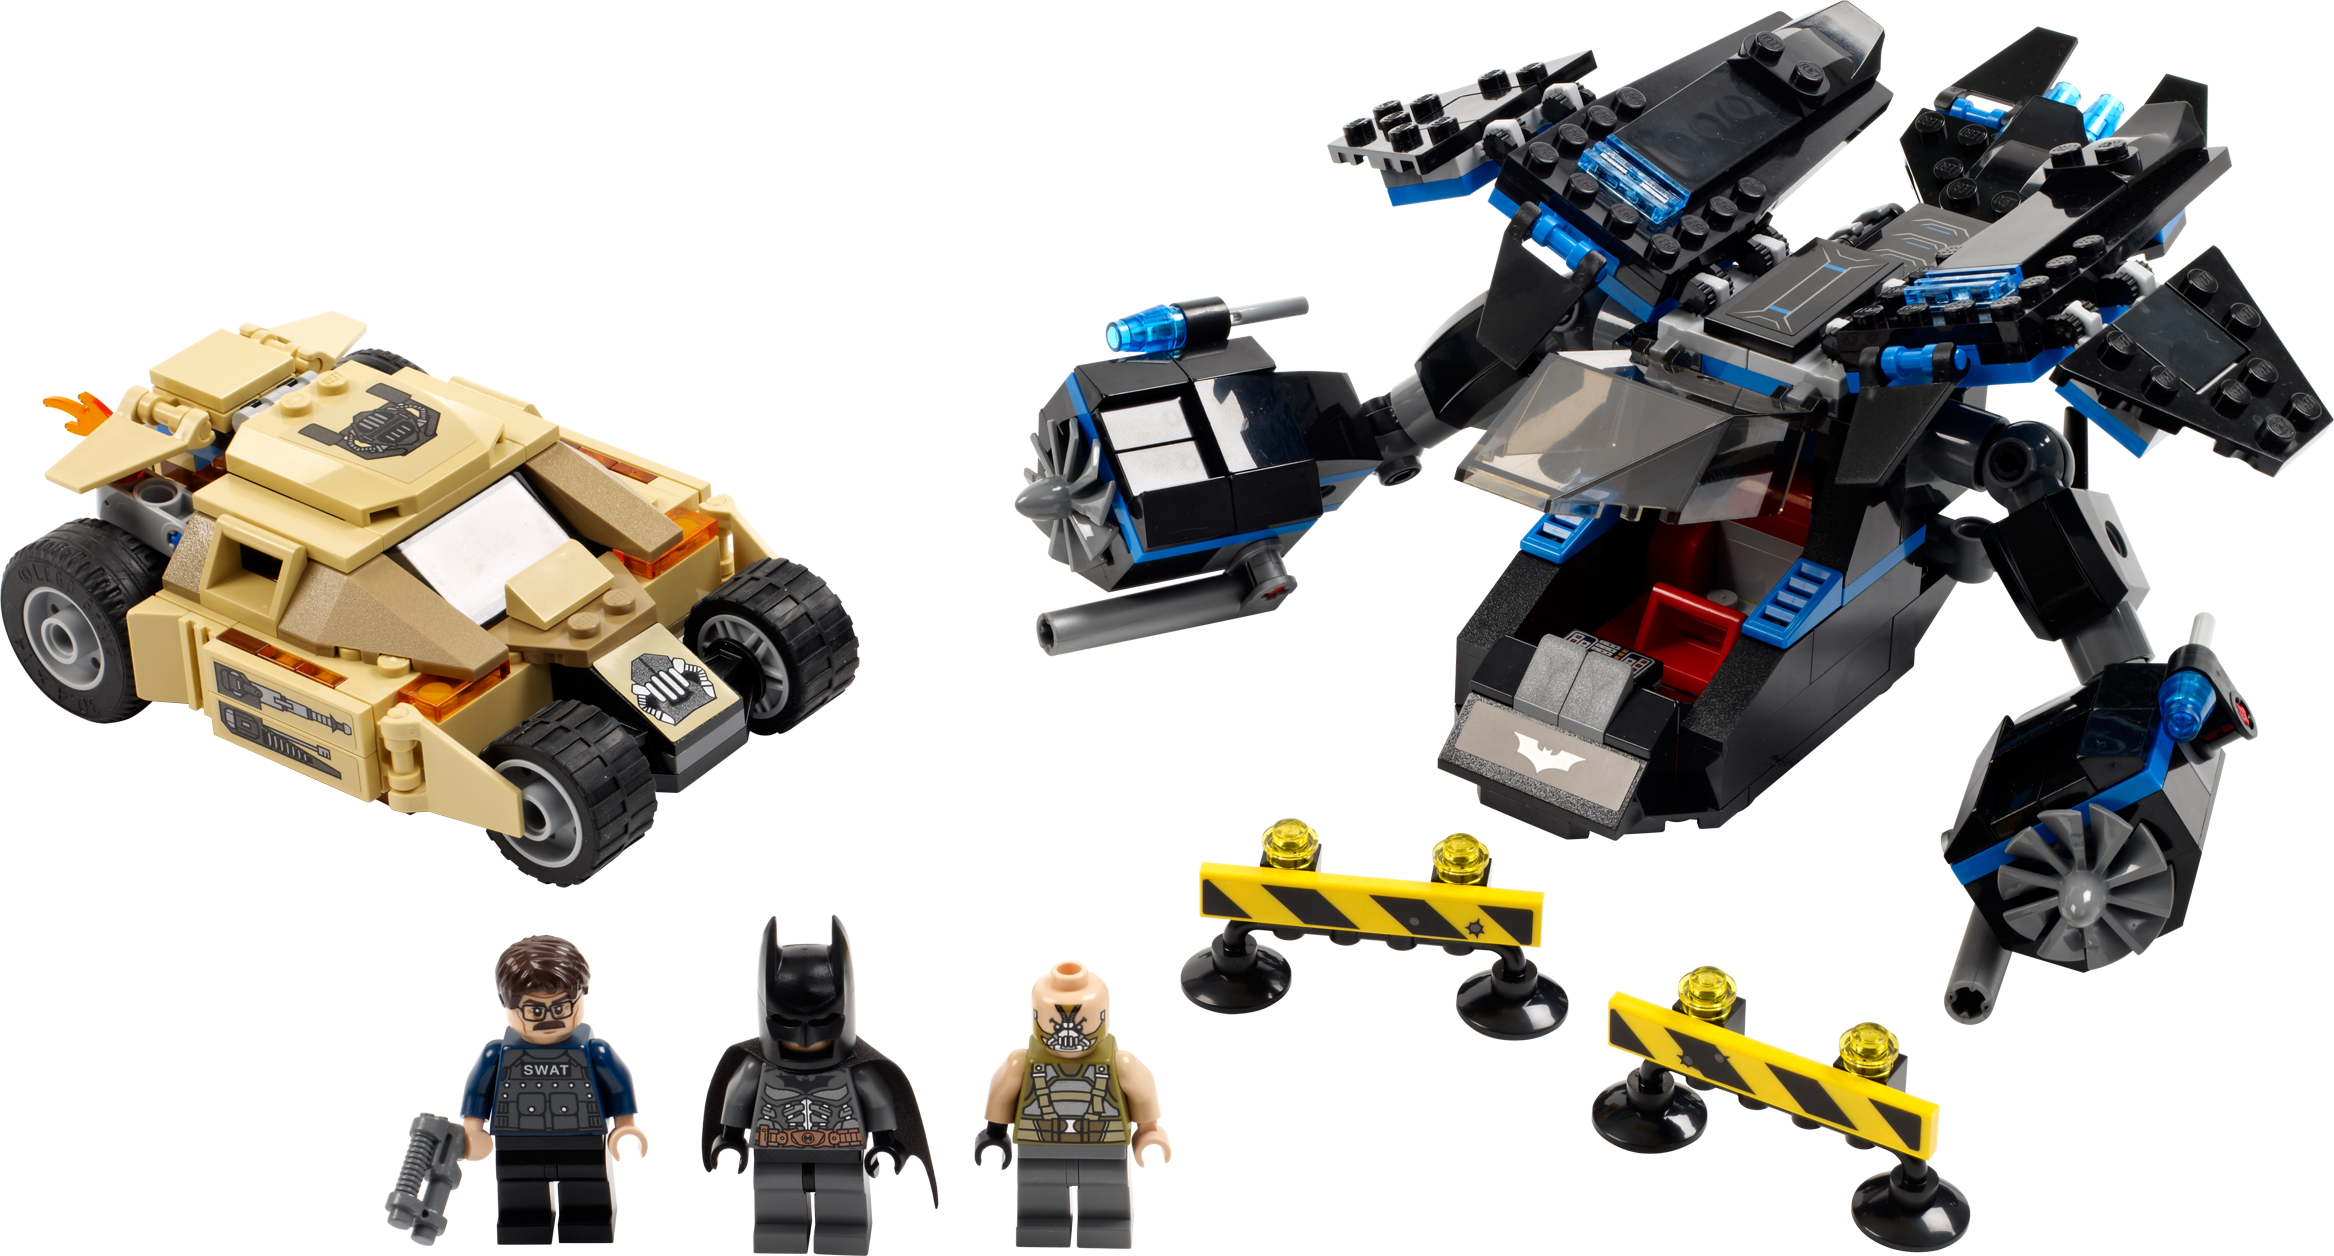 The Bat vs. Bane: Tumbler Chase